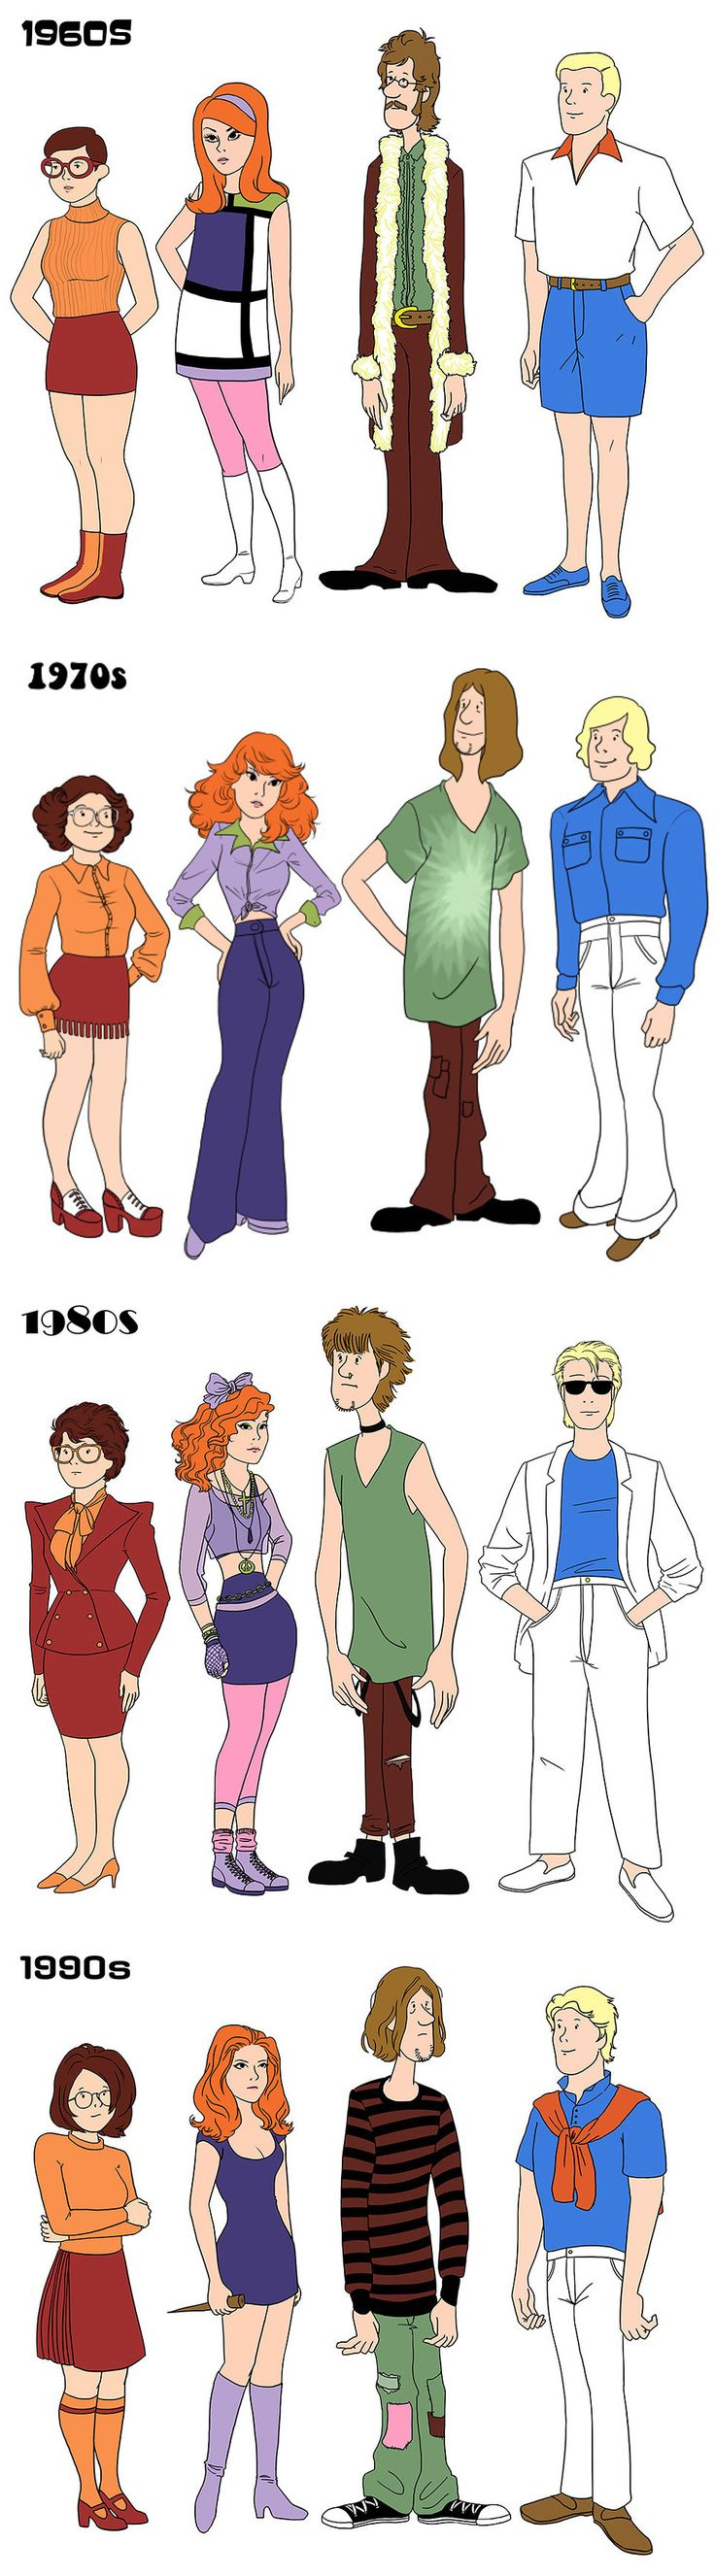 The Scooby Doo Gang Time Travel Through a 100 Years of Fashions! | Moviepilot.com #FanArt